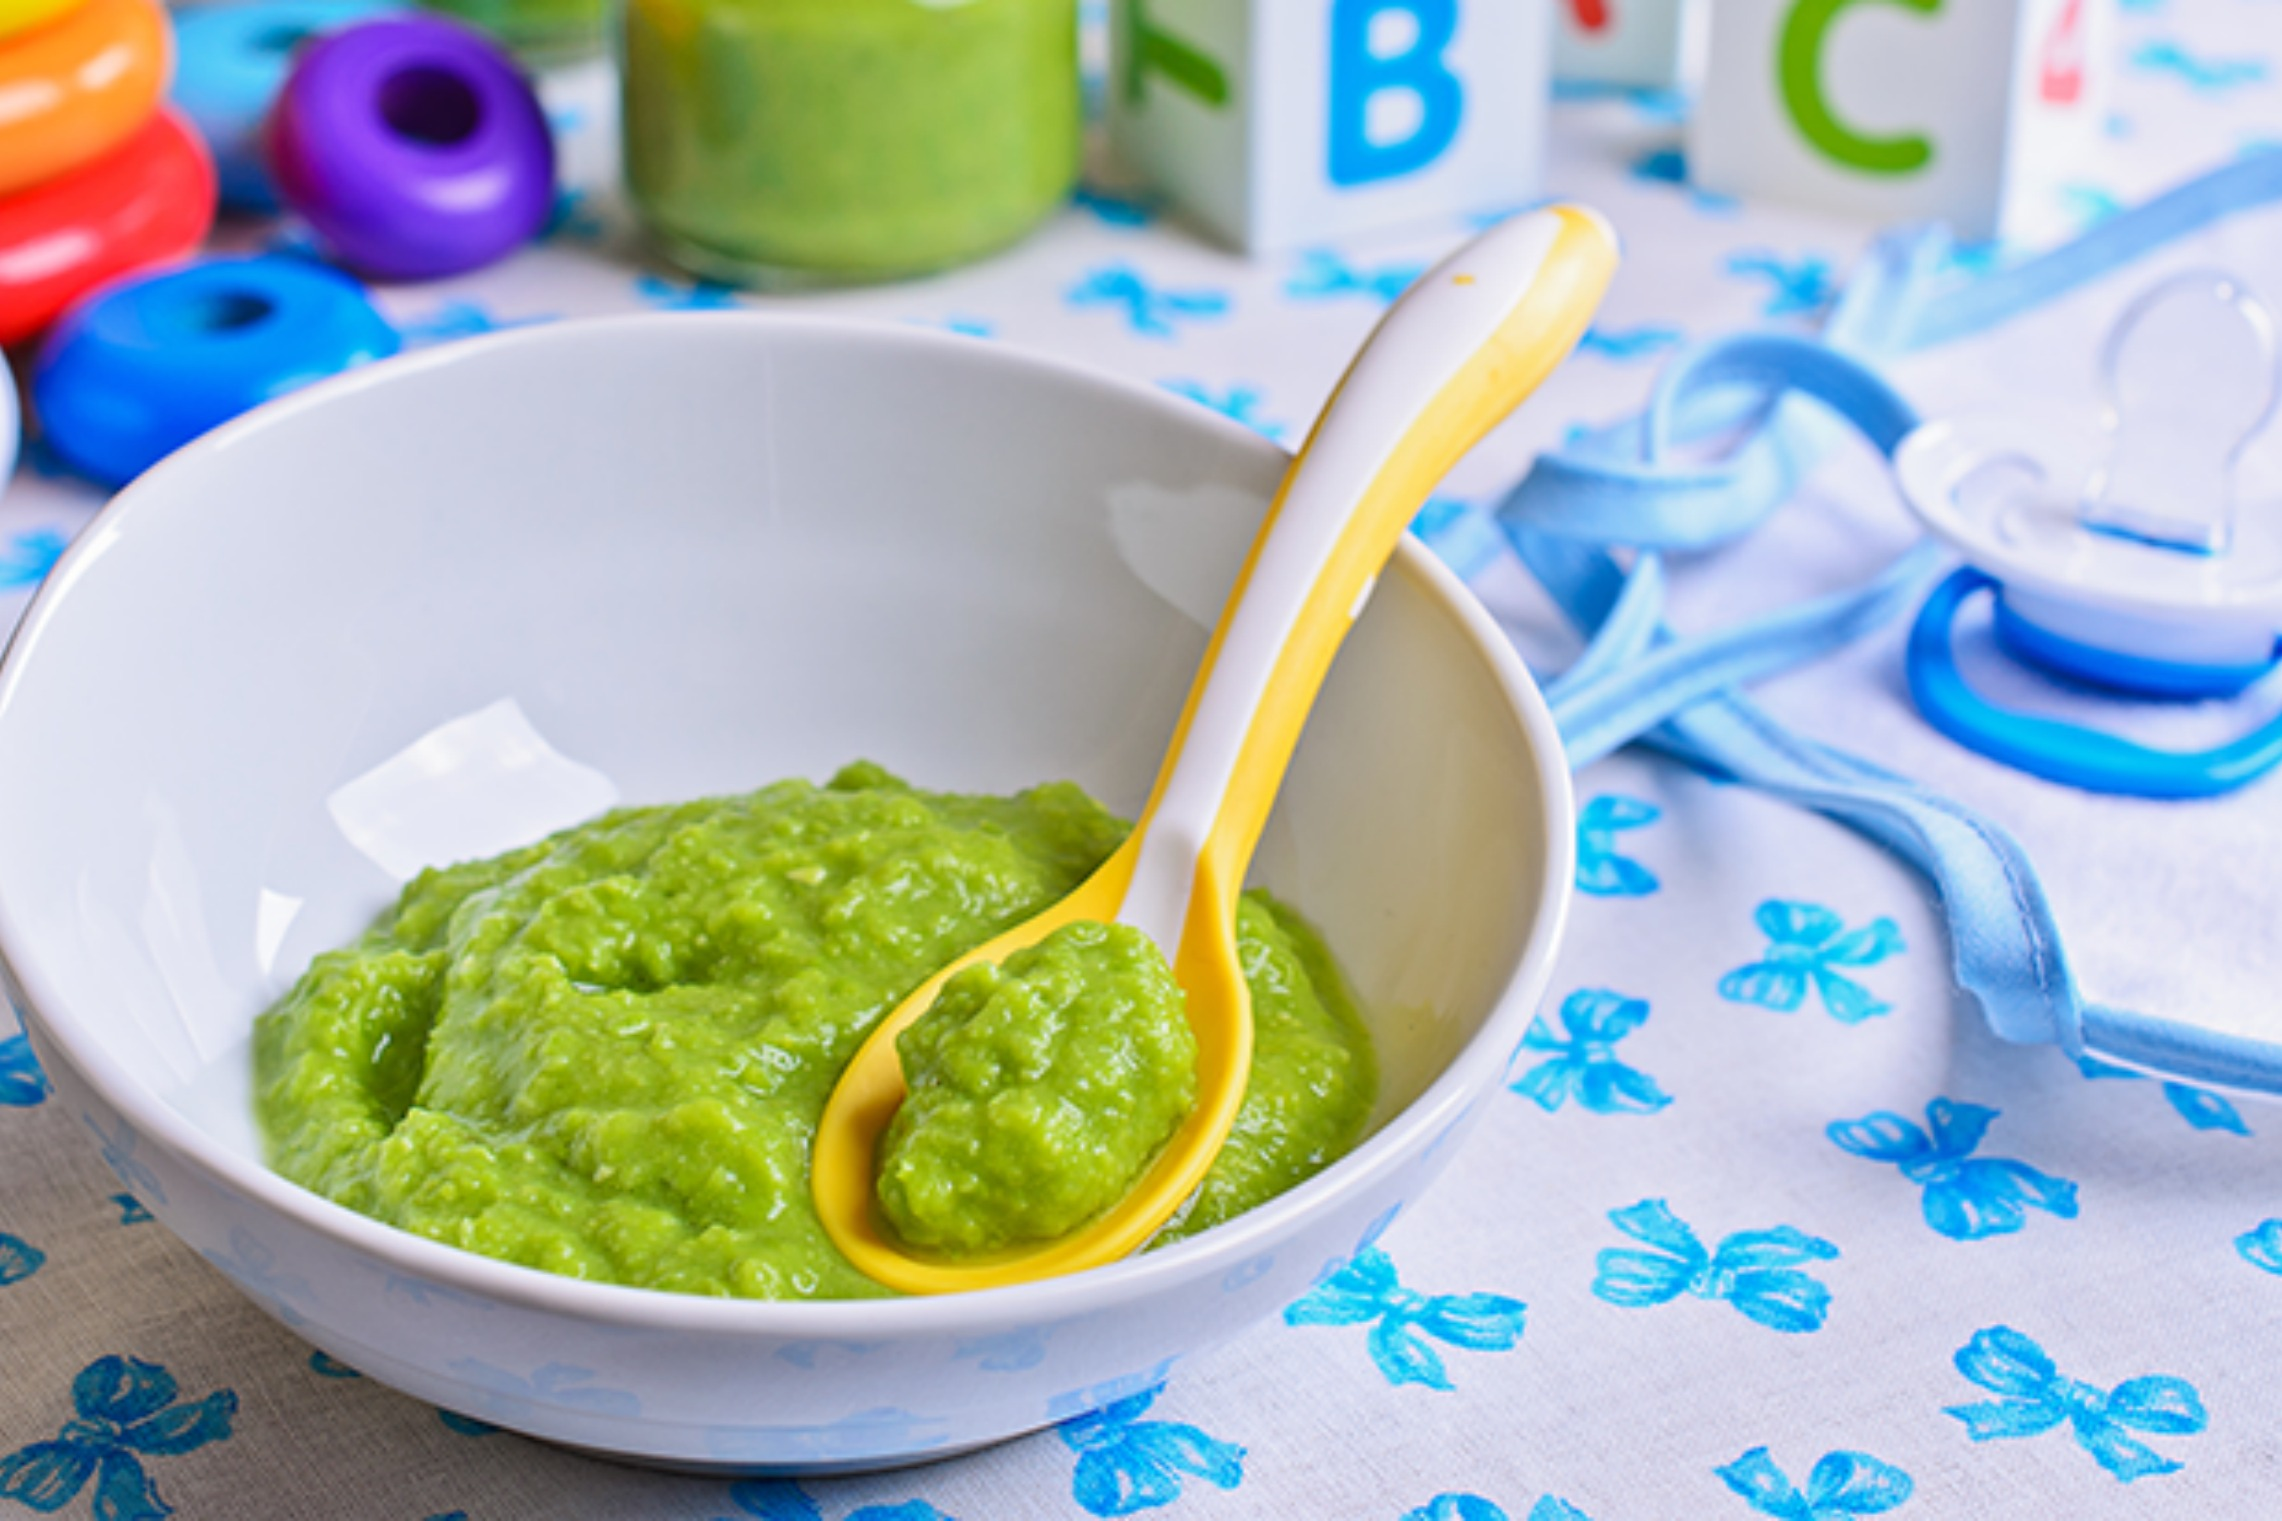 Image of green homemade baby food in a bowl